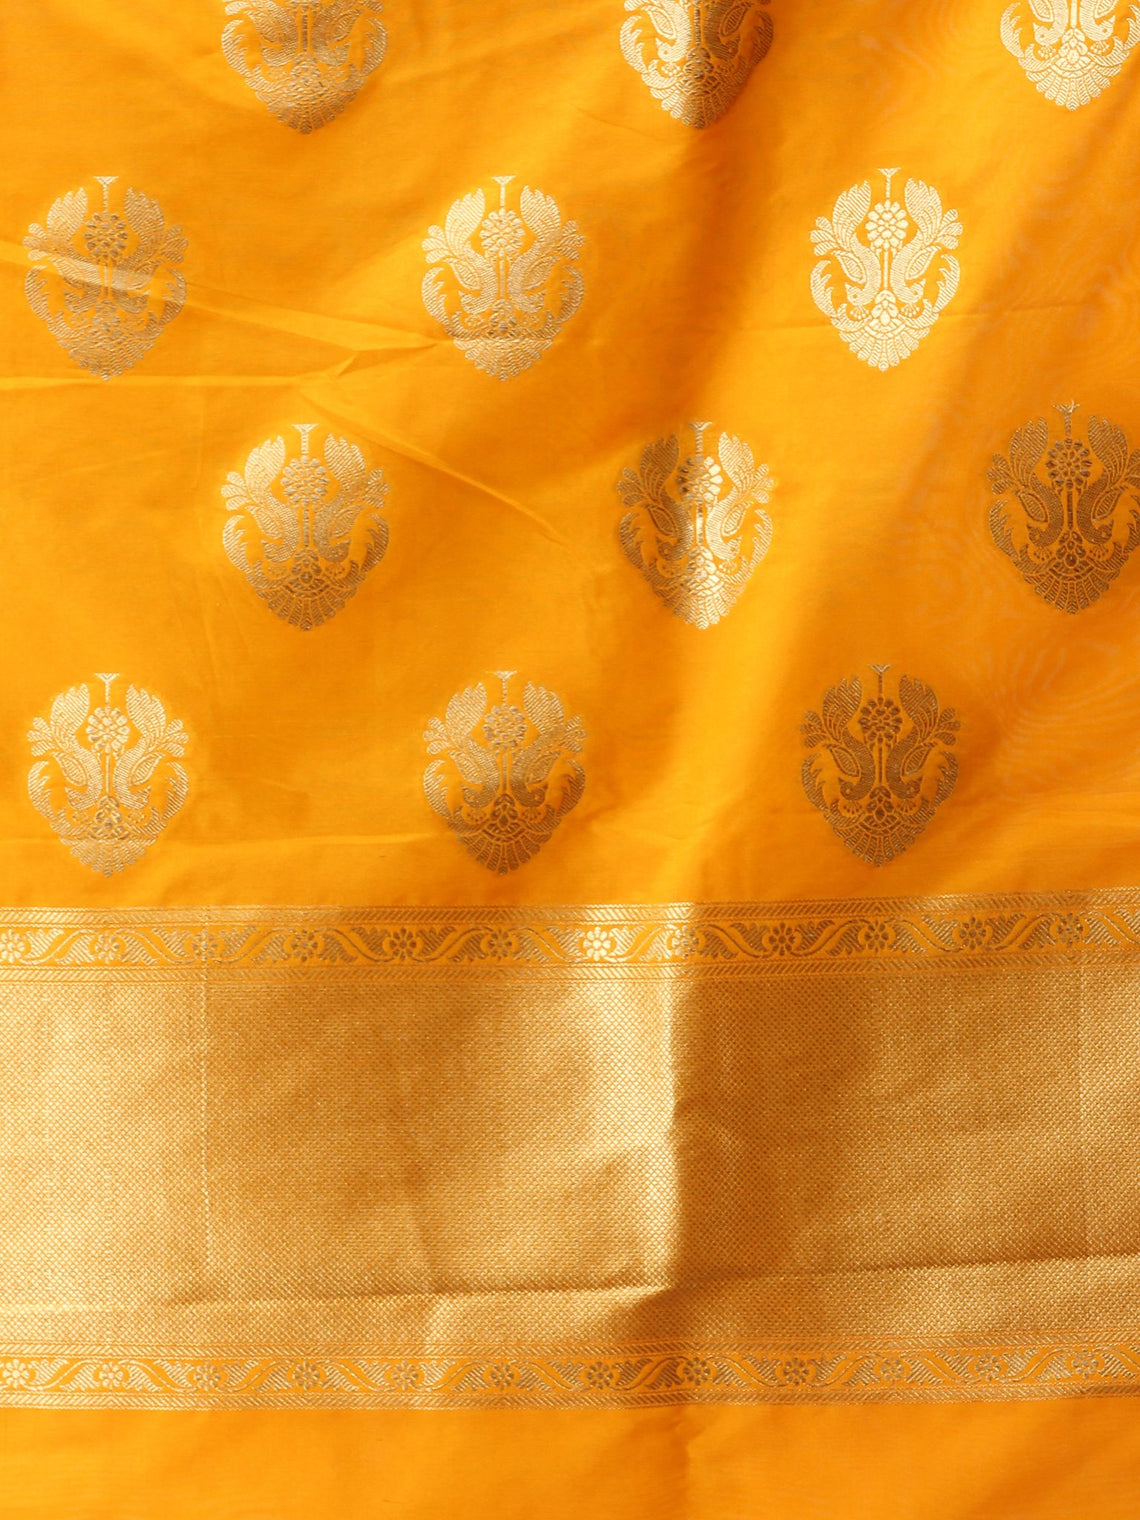 Banarasi Kanni Silk Dupatta With Zari Work - Yellow & Gold - D04170874